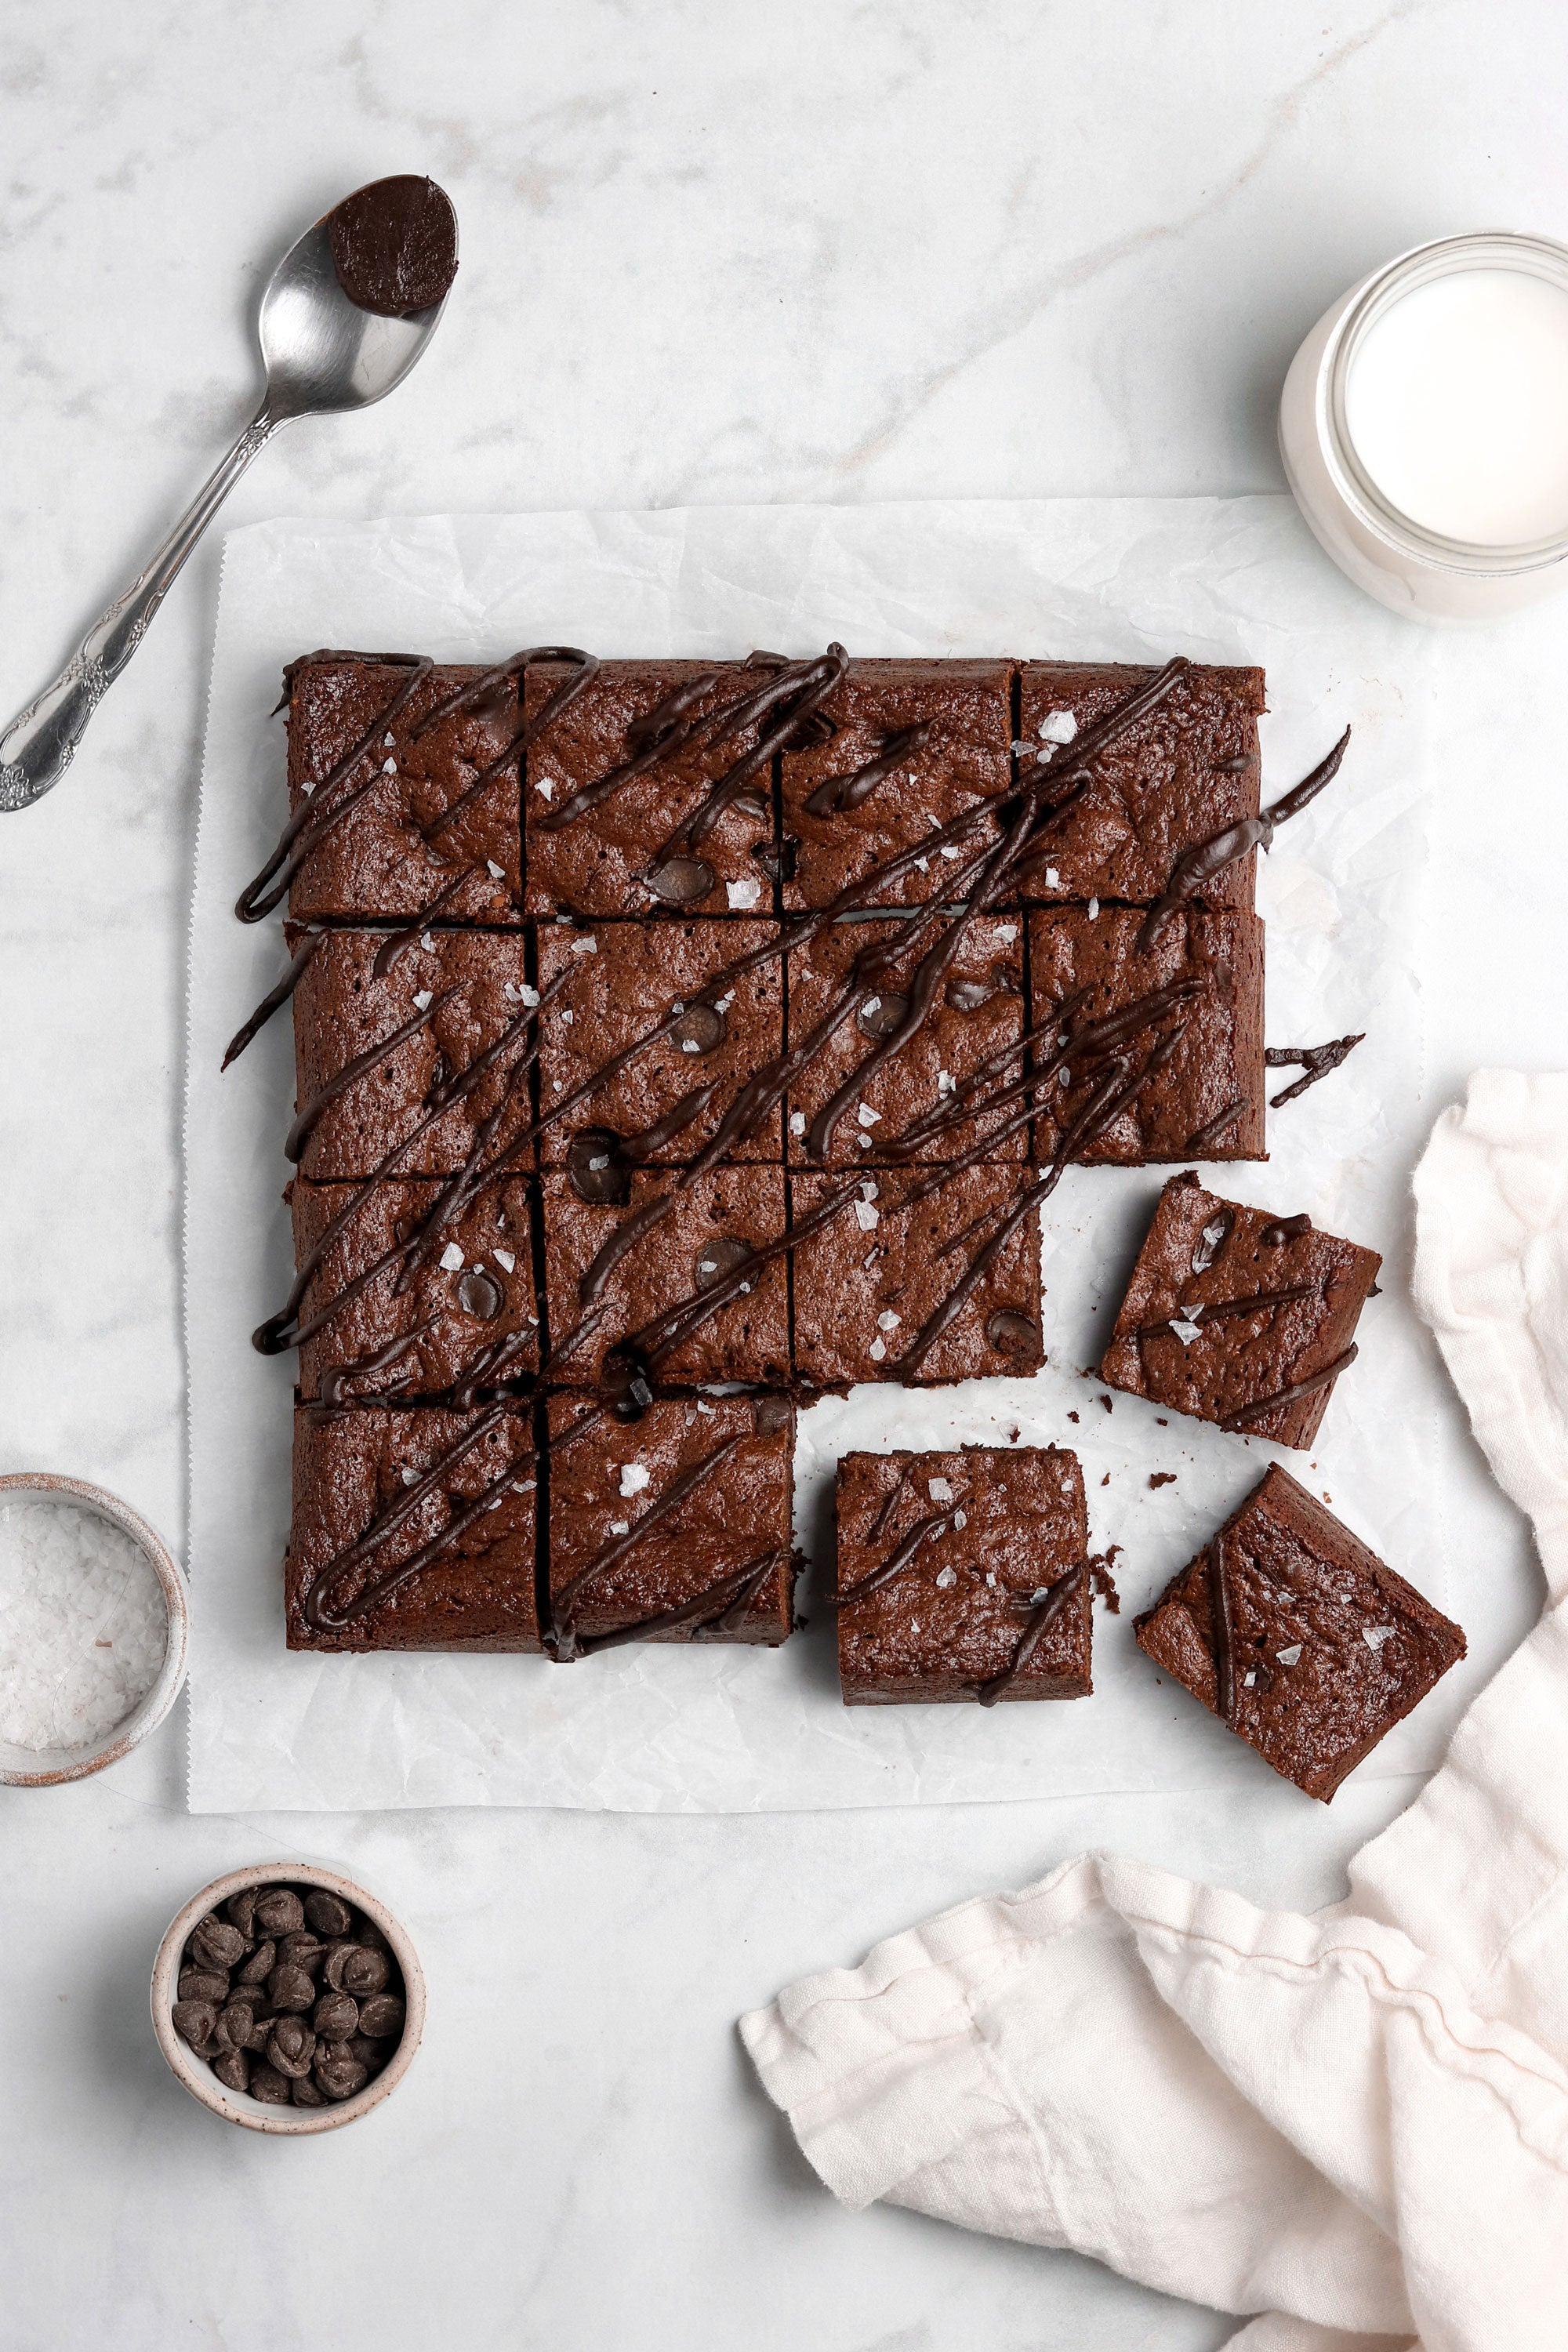 Image from above of Miss Jones Baking Co Paleo Brownies